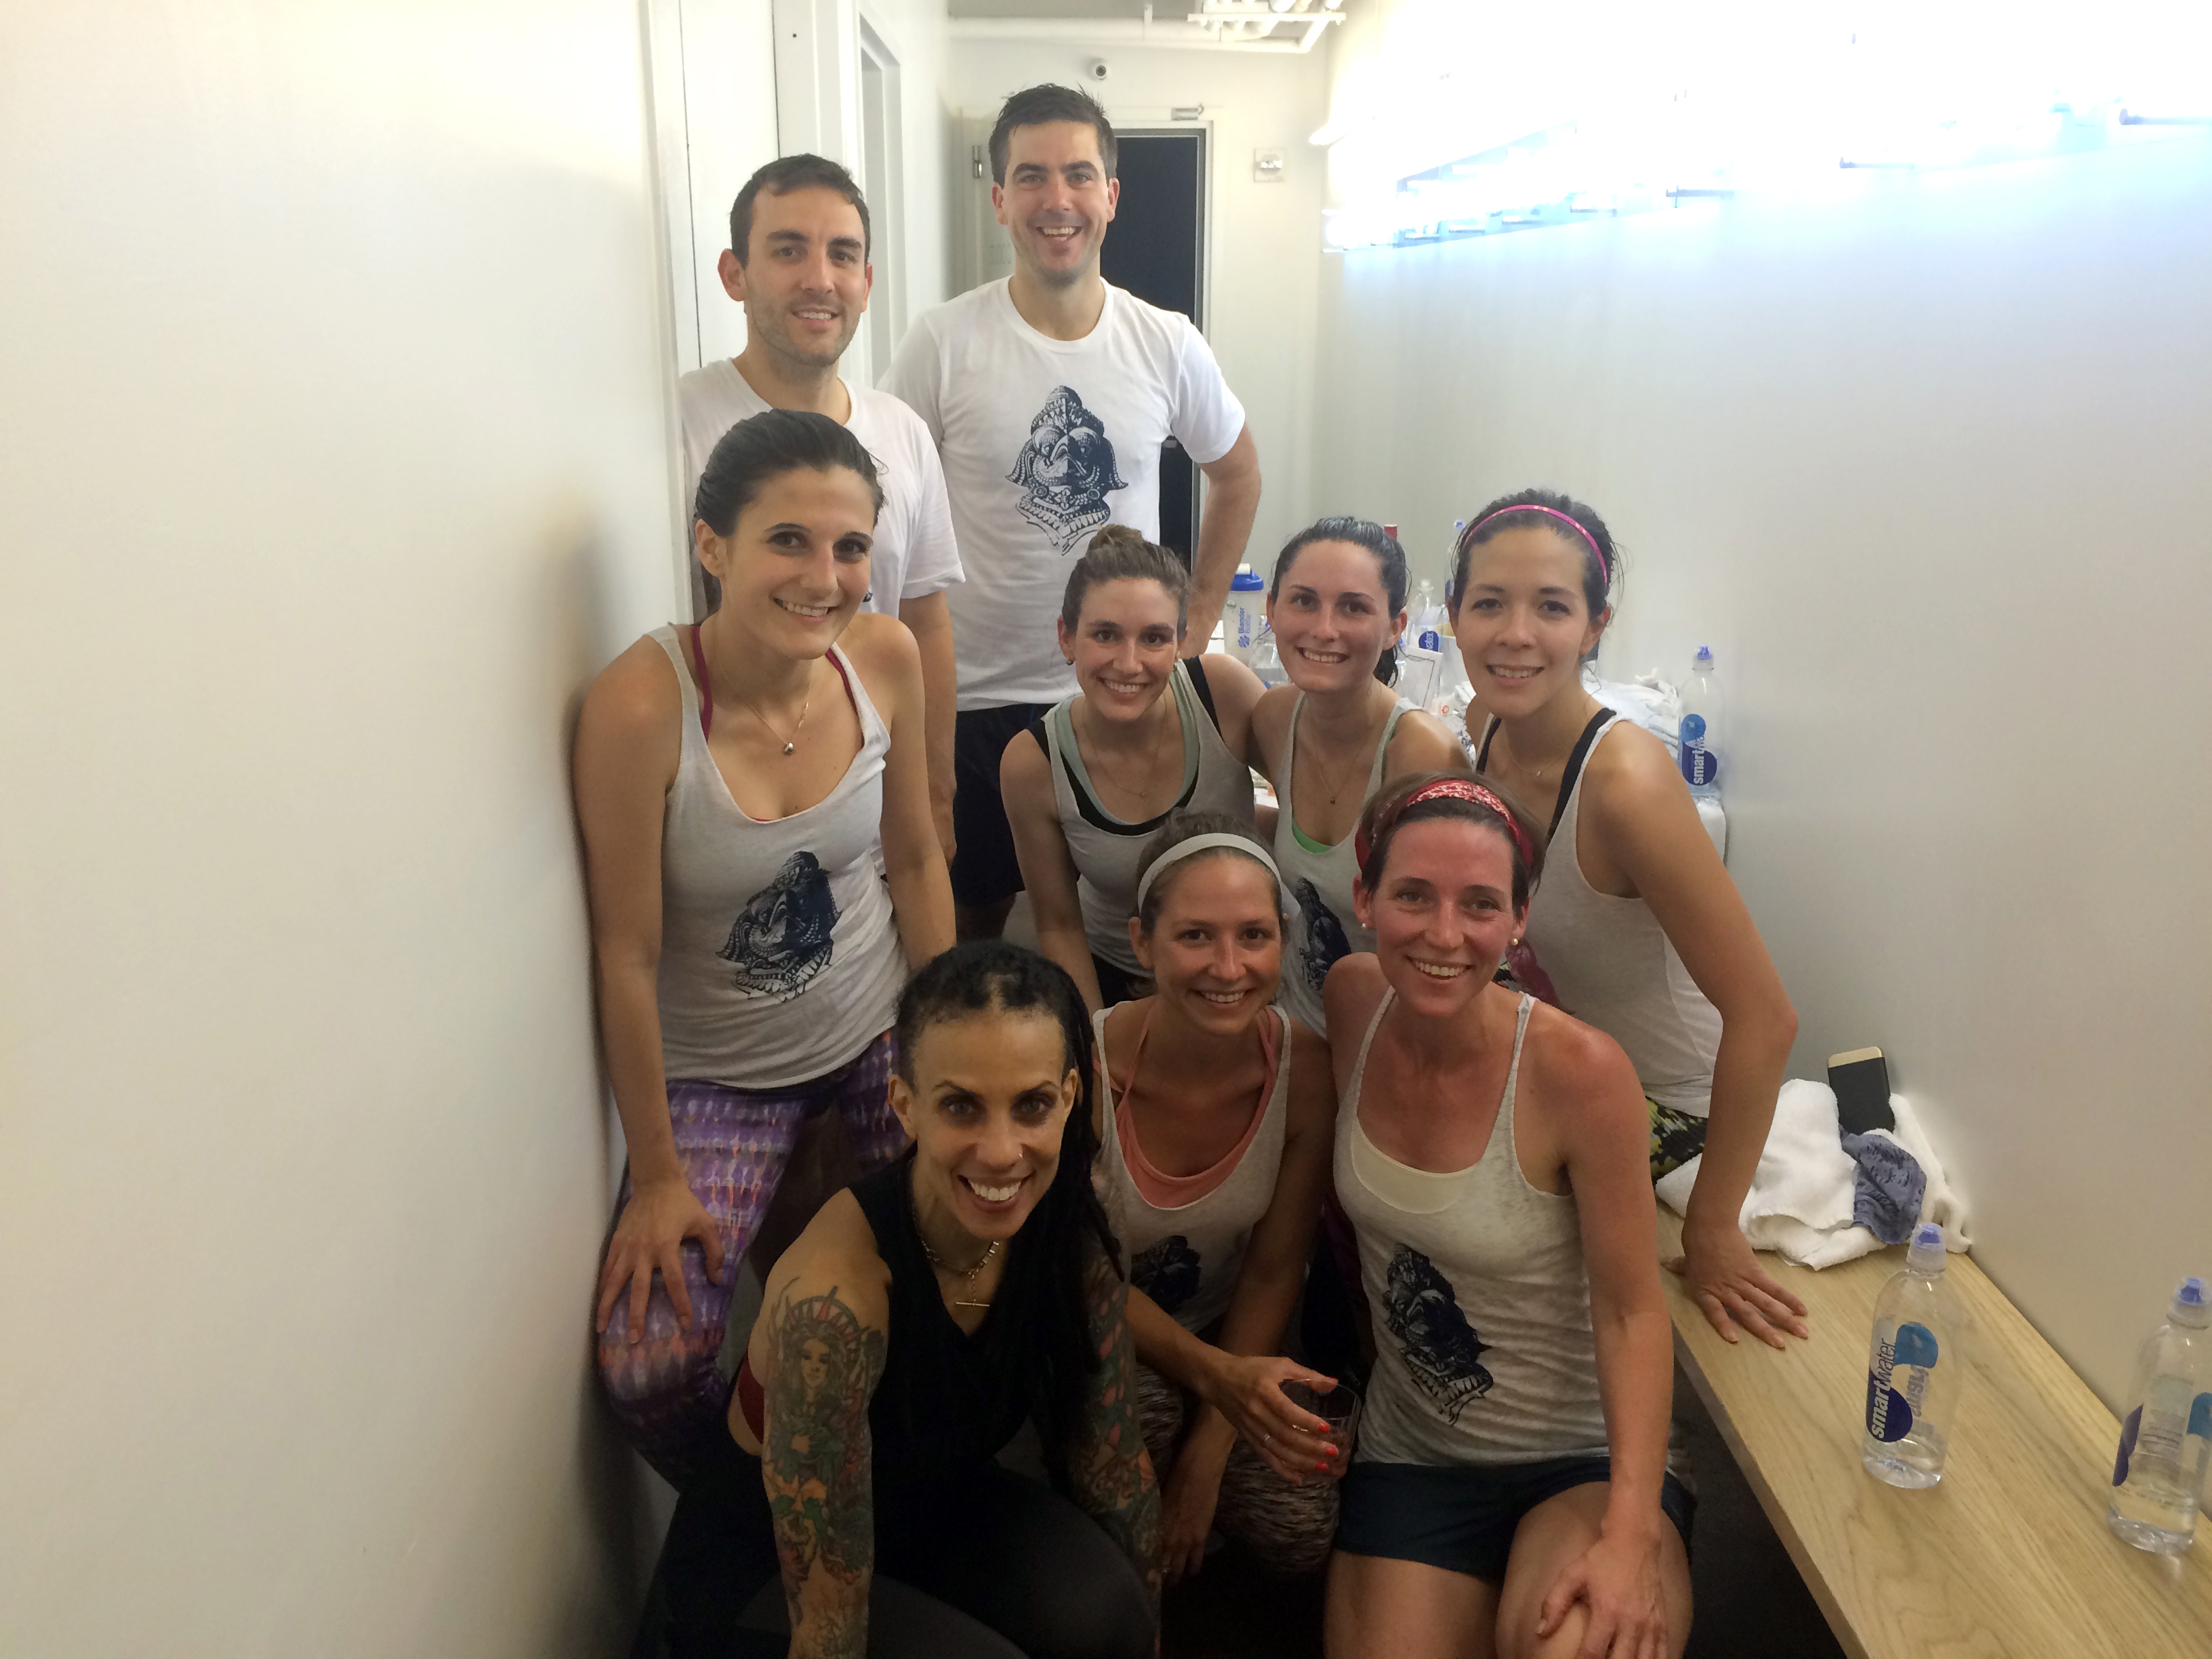 Moai Circle members and friends sweat it out at a SoulCycle charity ride to raise money for Garuda #72